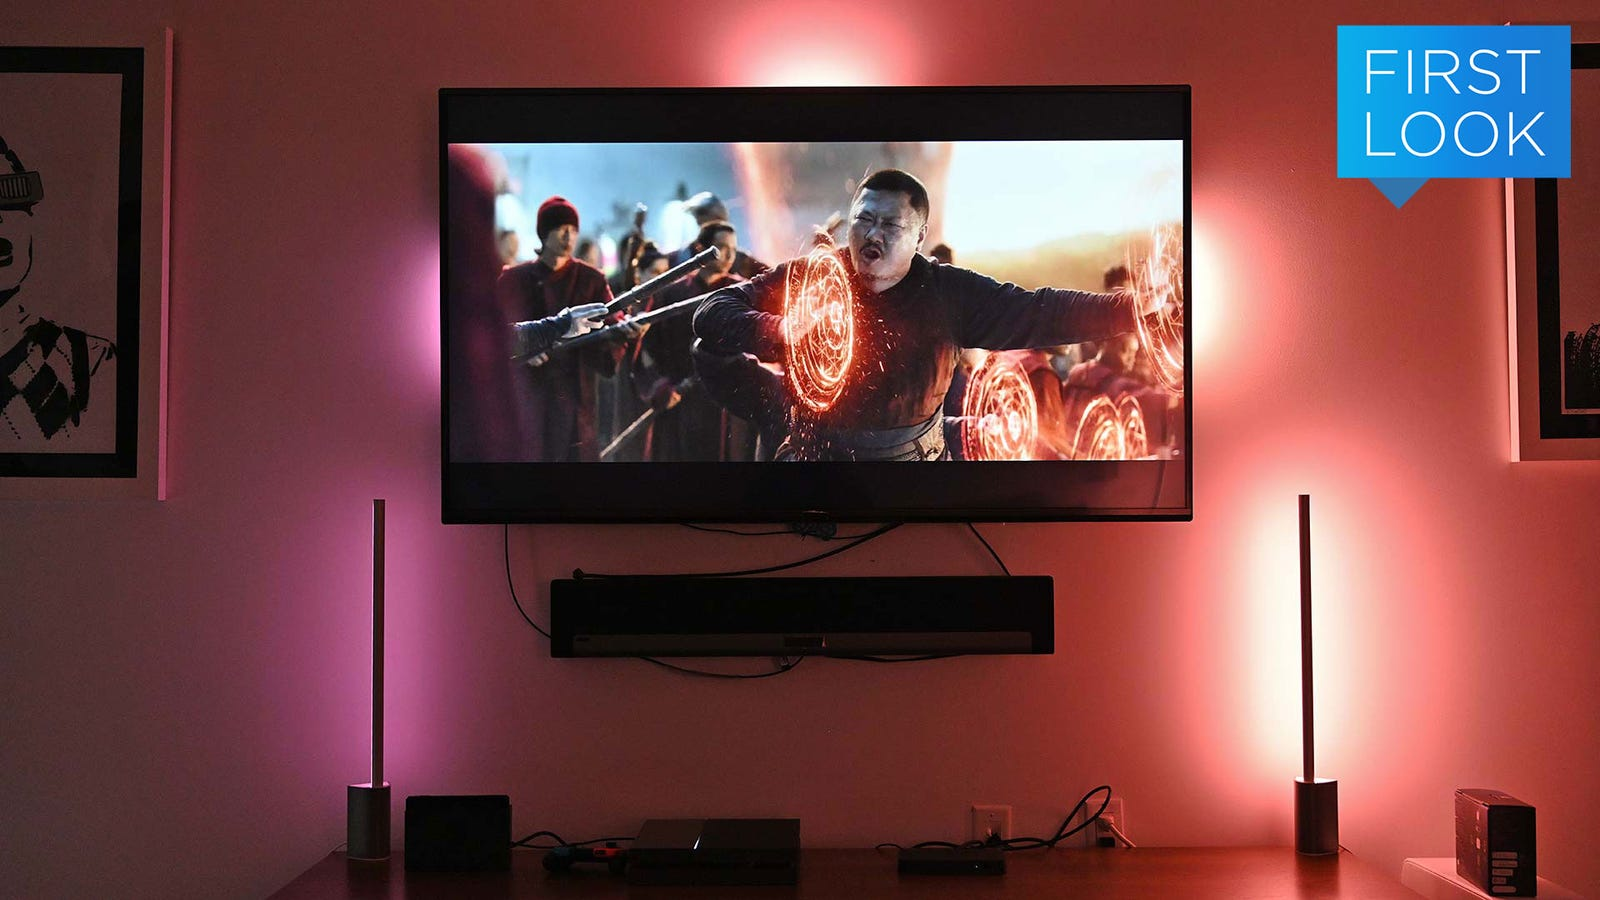 Now You Can Easily Sync All Your Philips Hue Lights With Your TV